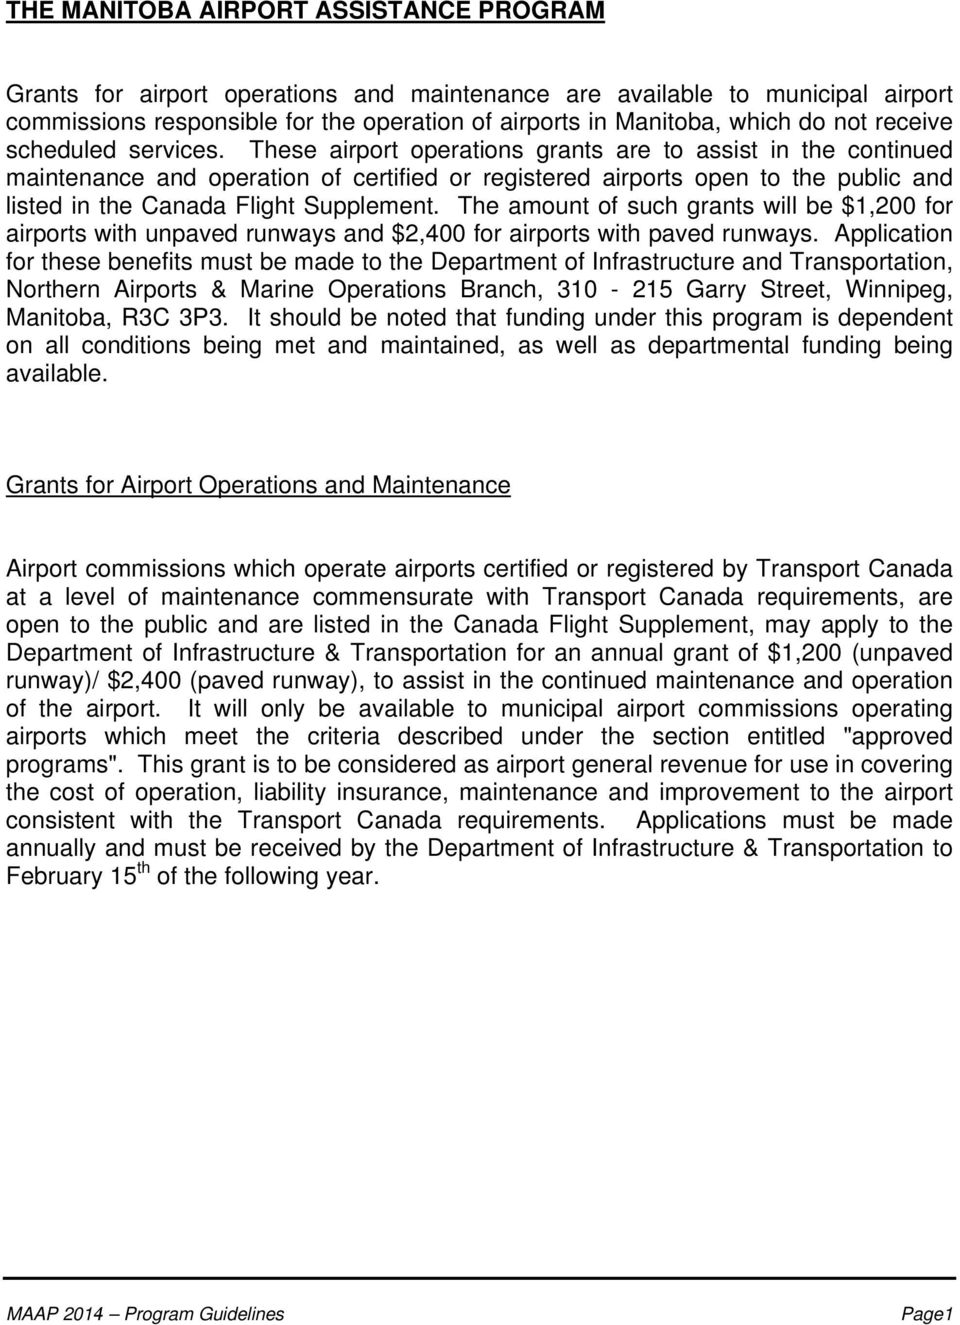 These airport operations grants are to assist in the continued maintenance and operation of certified or registered airports open to the public and listed in the Canada Flight Supplement.